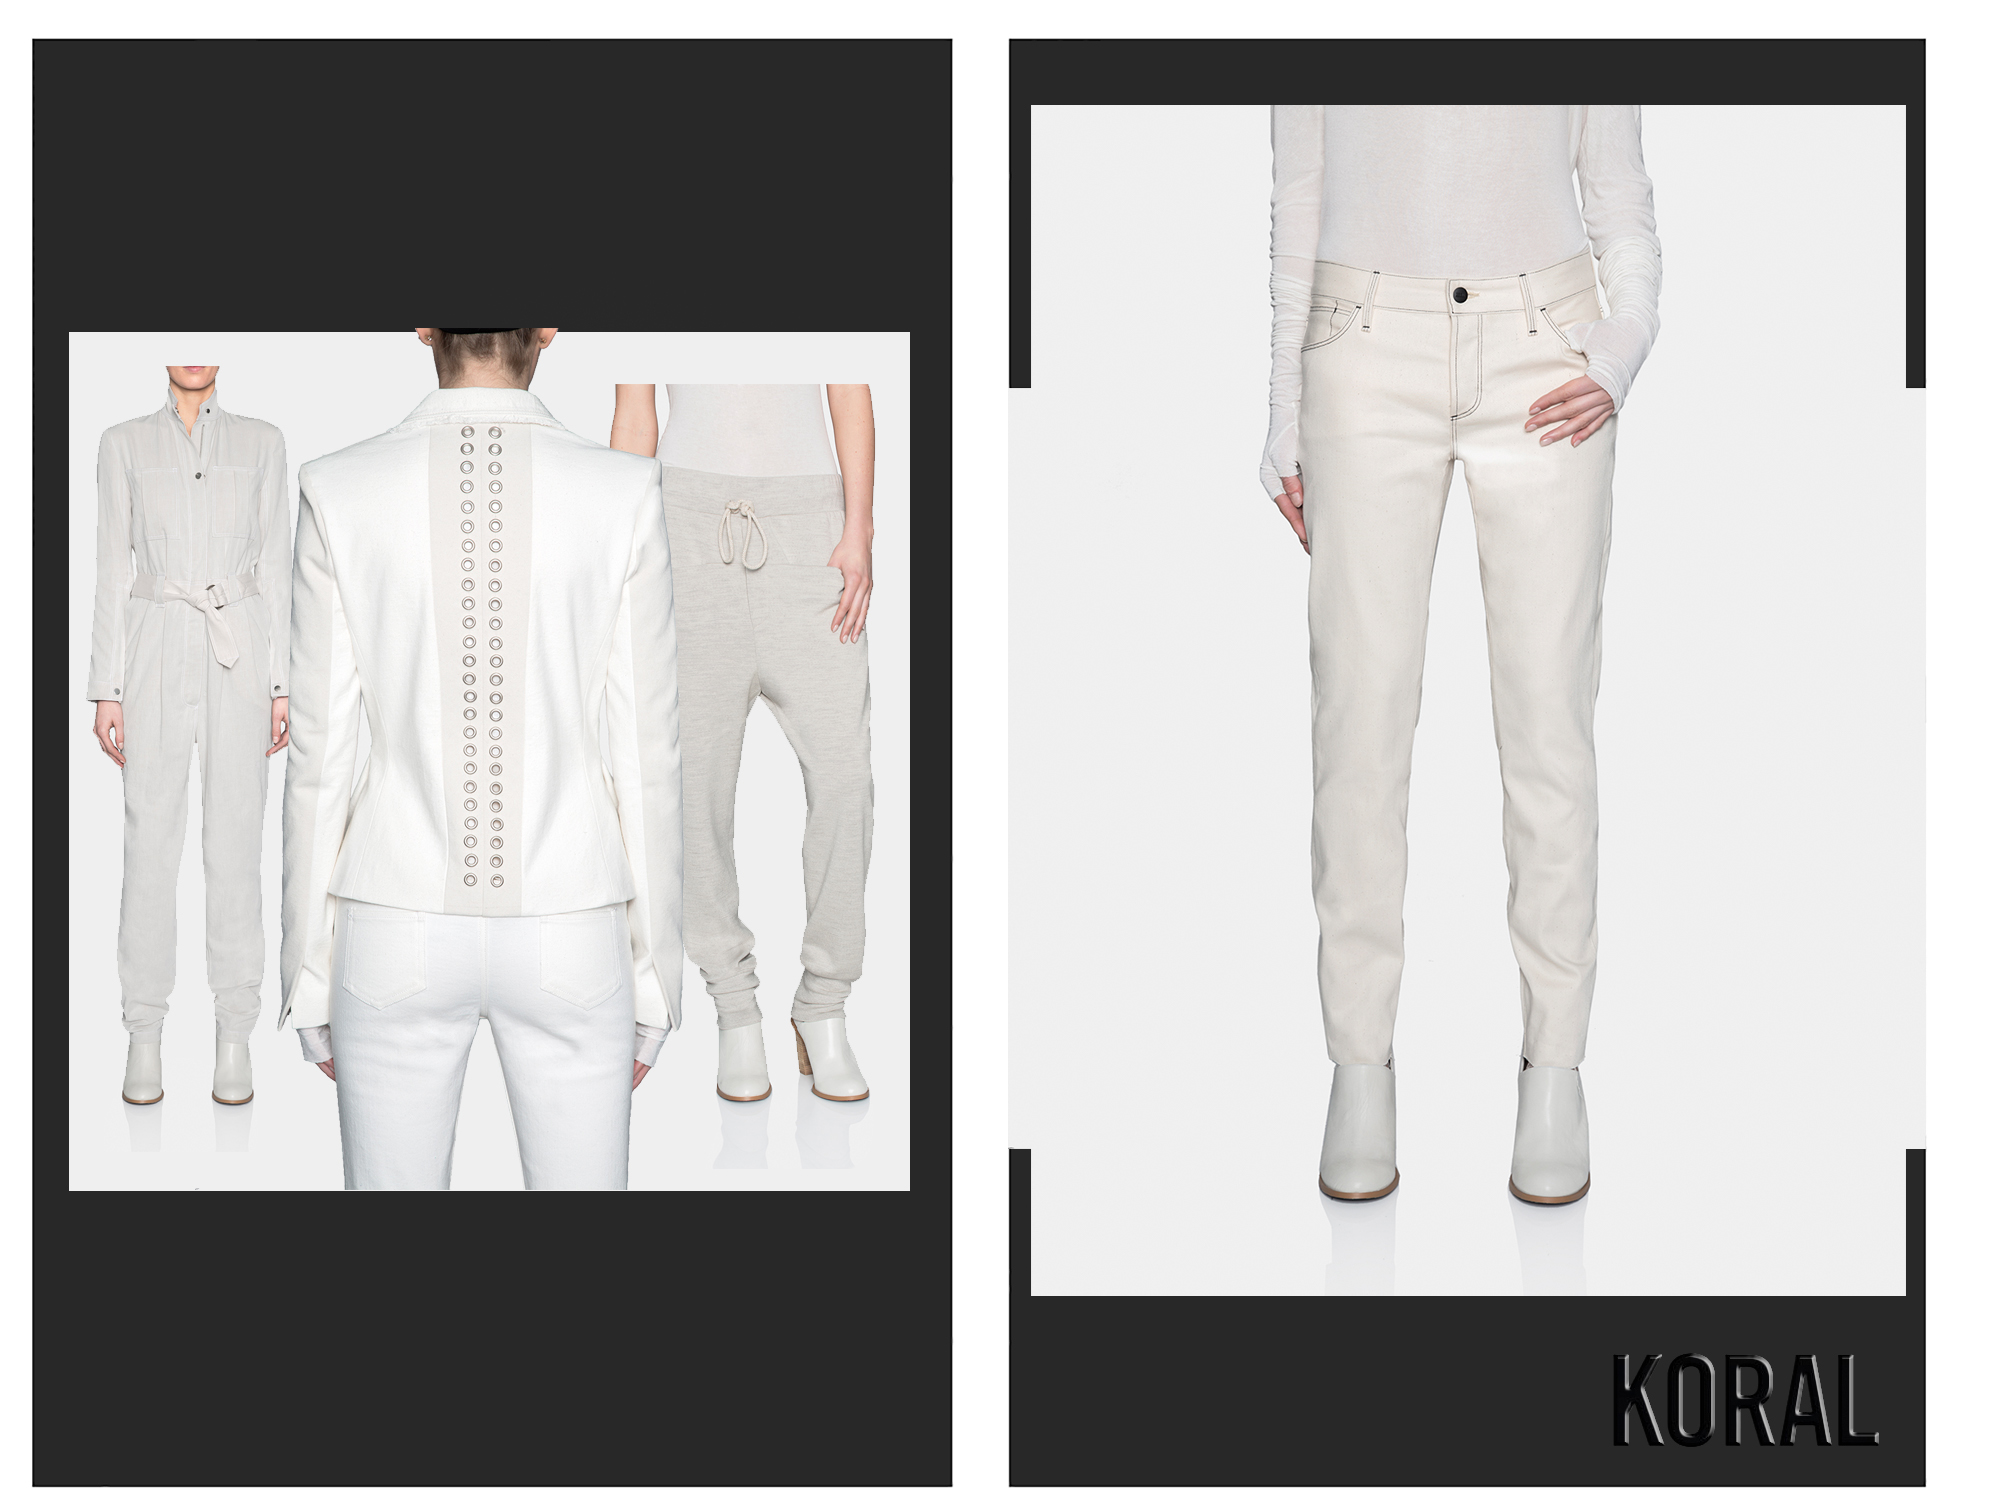 Koral Denim_feb14_02_main